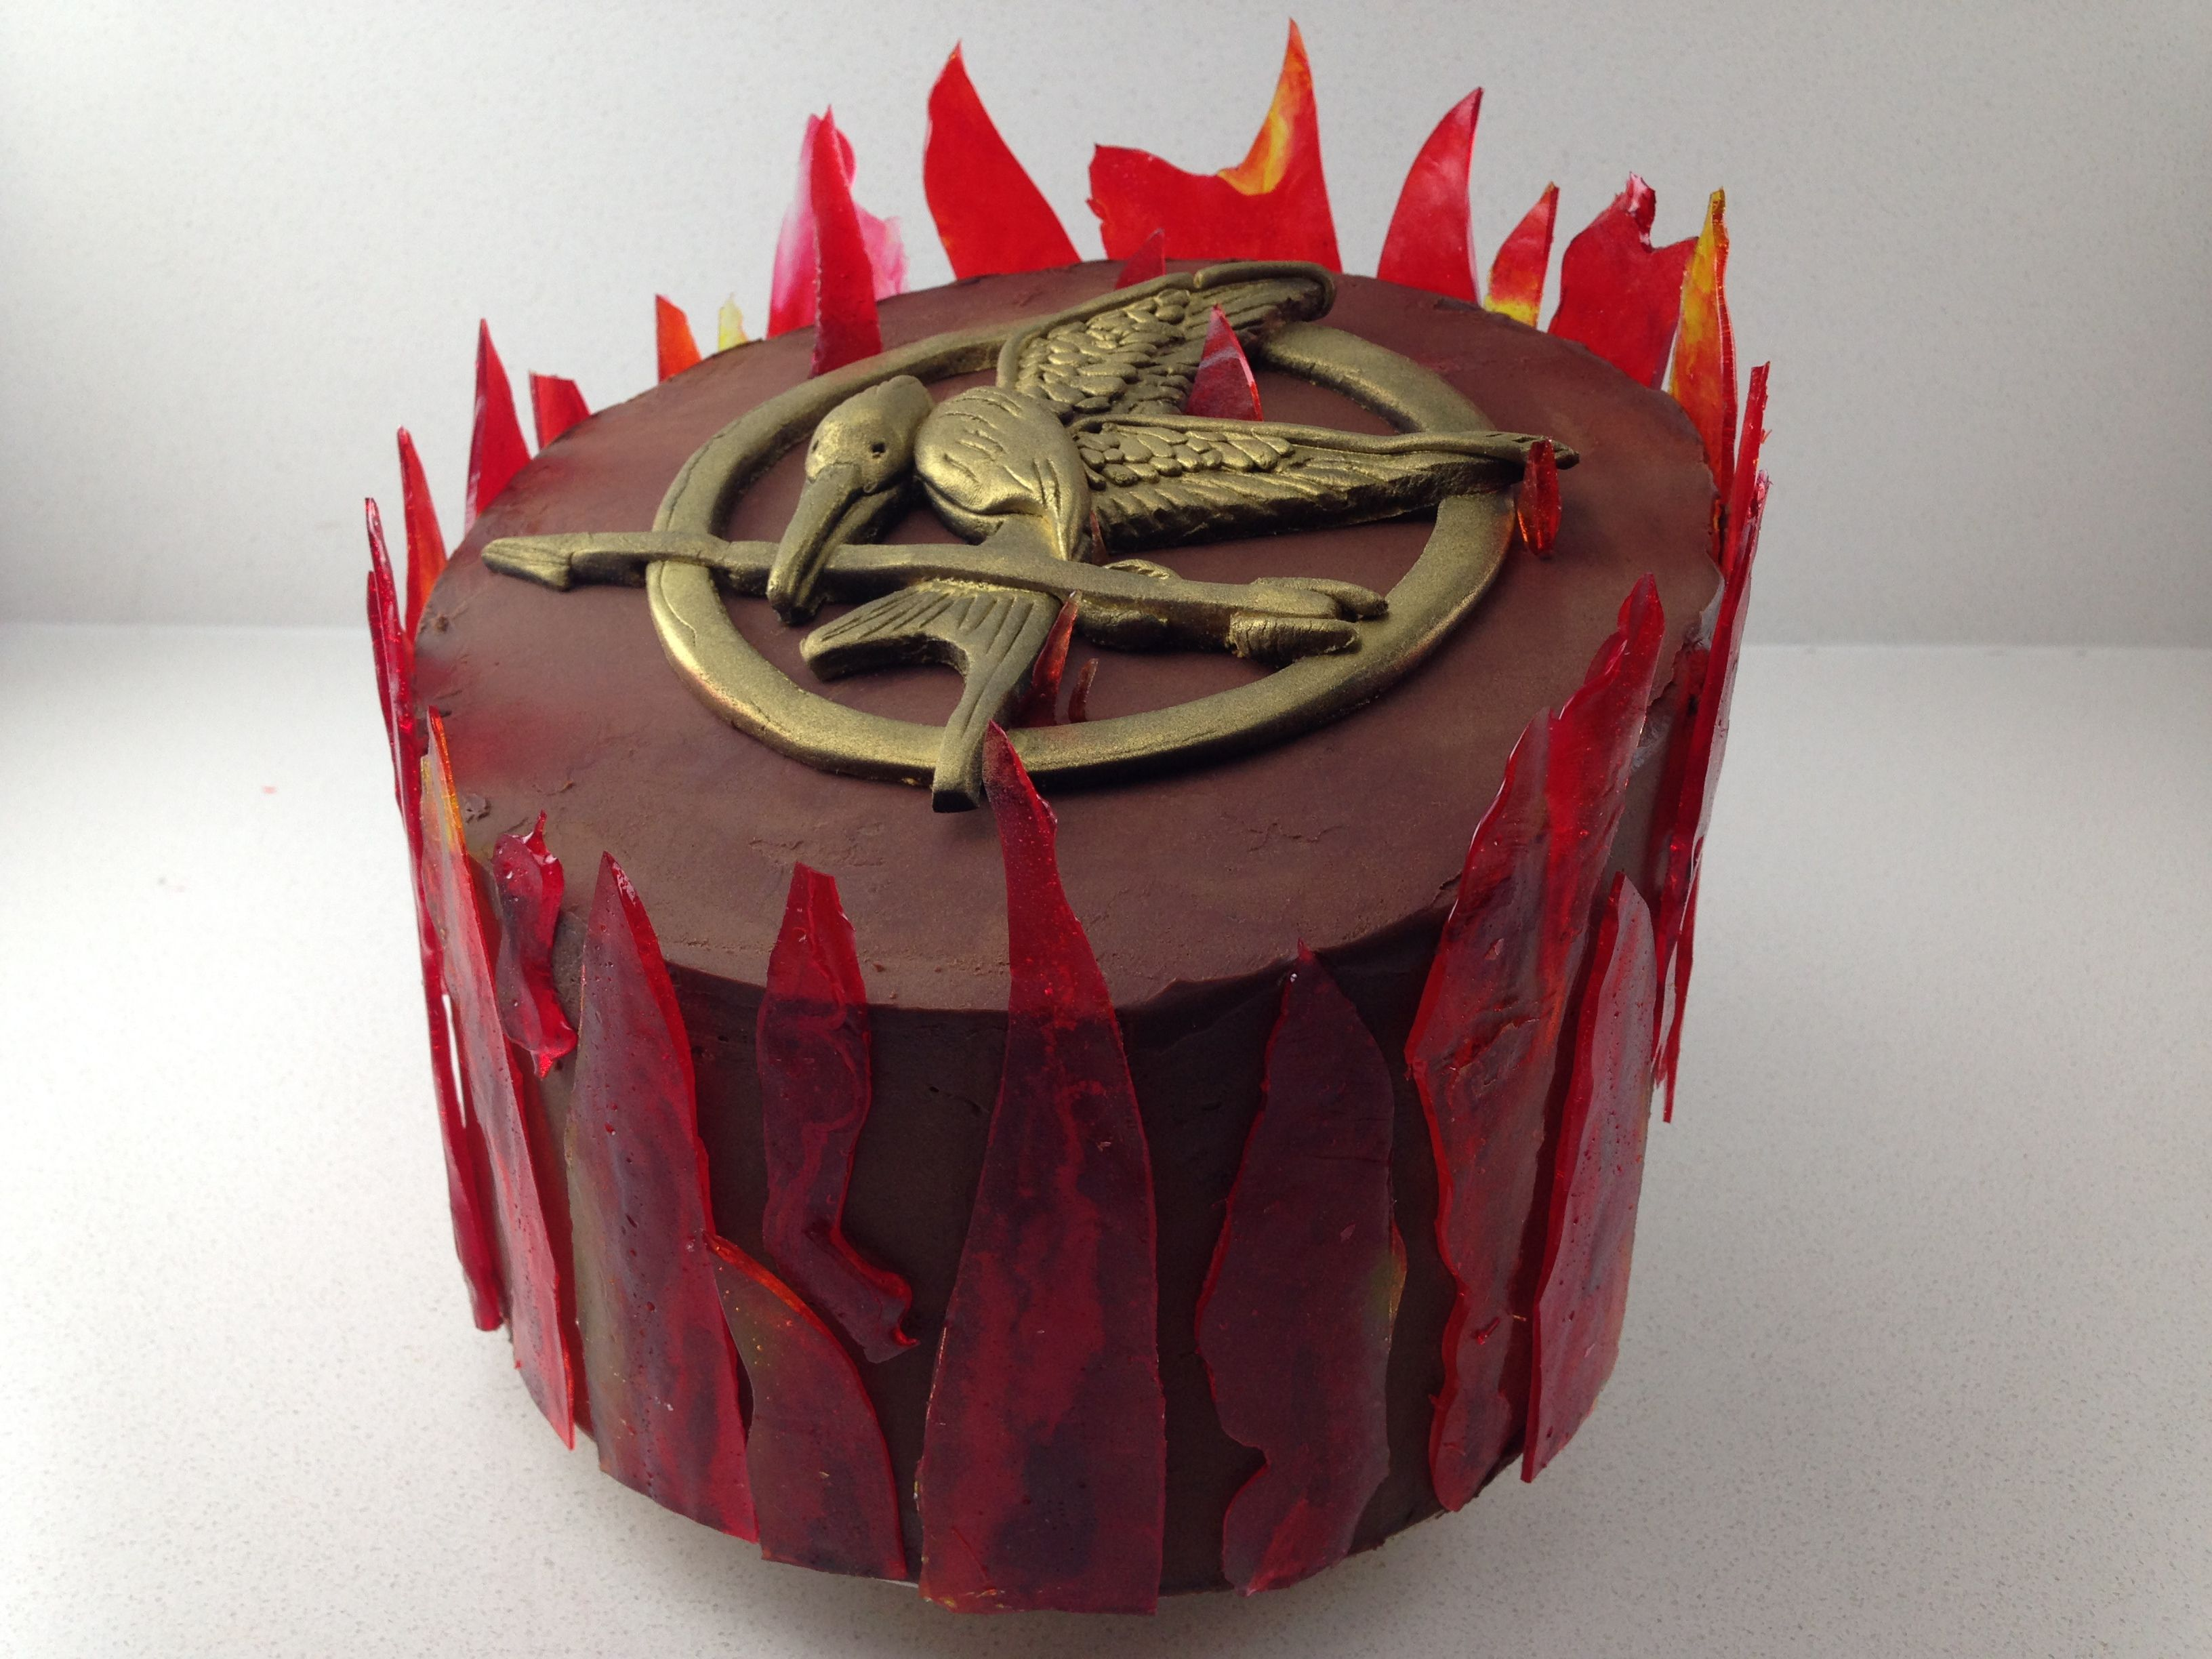 Howtocookthat Cakes Dessert Amp Chocolate Hunger Games